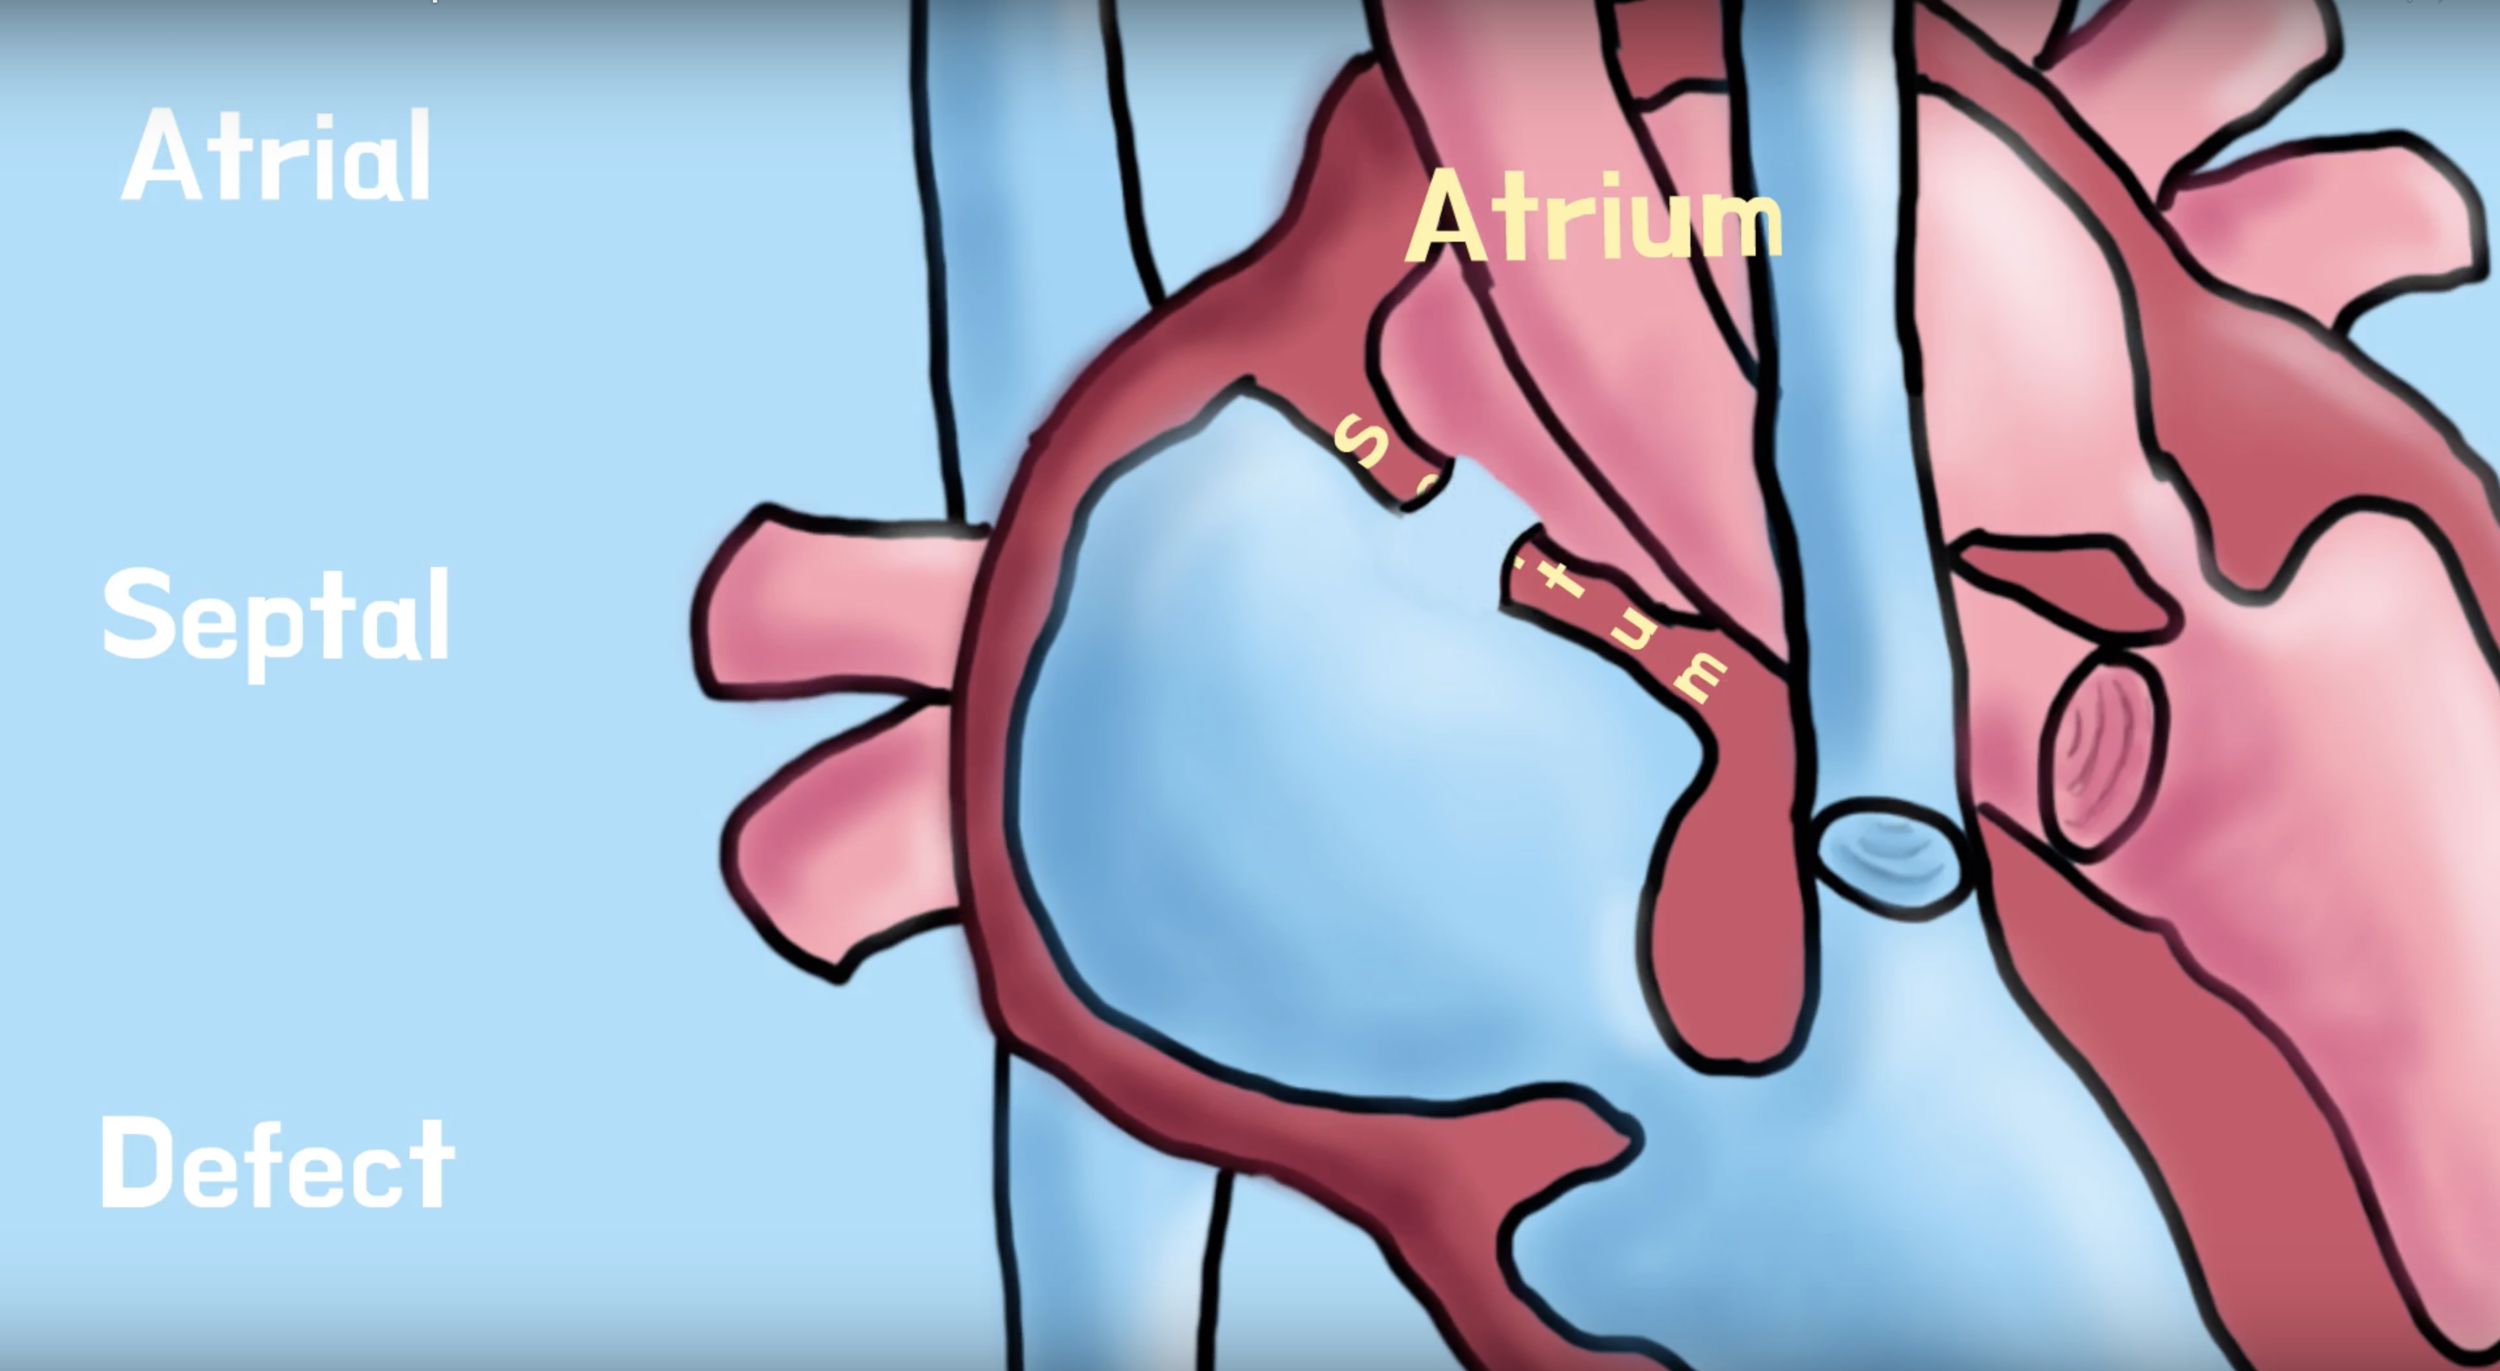 ASD - An ASD, or Atrial Septal Defect, can sound really confusing but it's actually pretty simple. Afi and Zozo will tell you all about it in this short video!